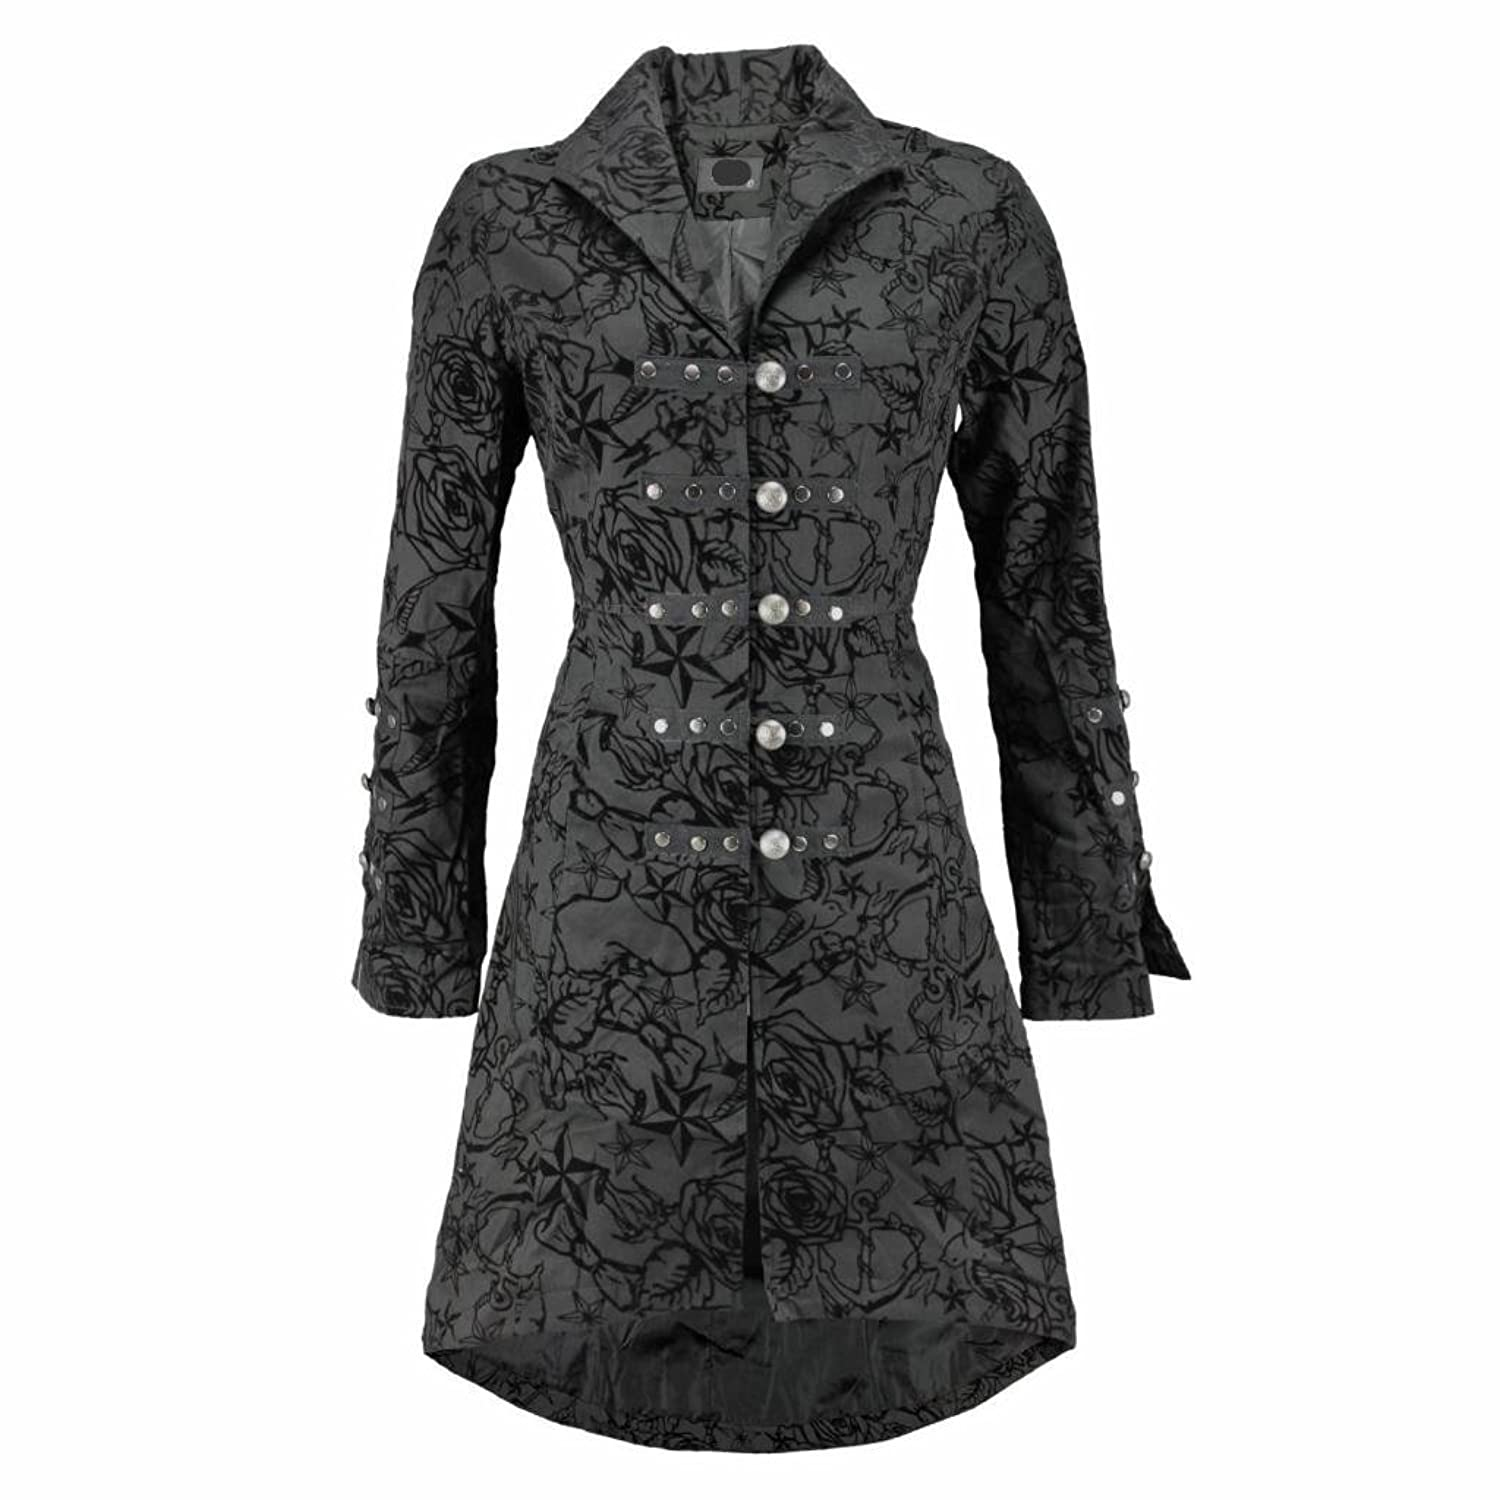 Steampunk Jacket, Coat, Overcoat, Cape Pretty Kitty Fashion Black Vintage Tattoo Flock Fabric Long Coat - NOW AVAILABLE UP TO SIZE UK 26 £57.99 AT vintagedancer.com